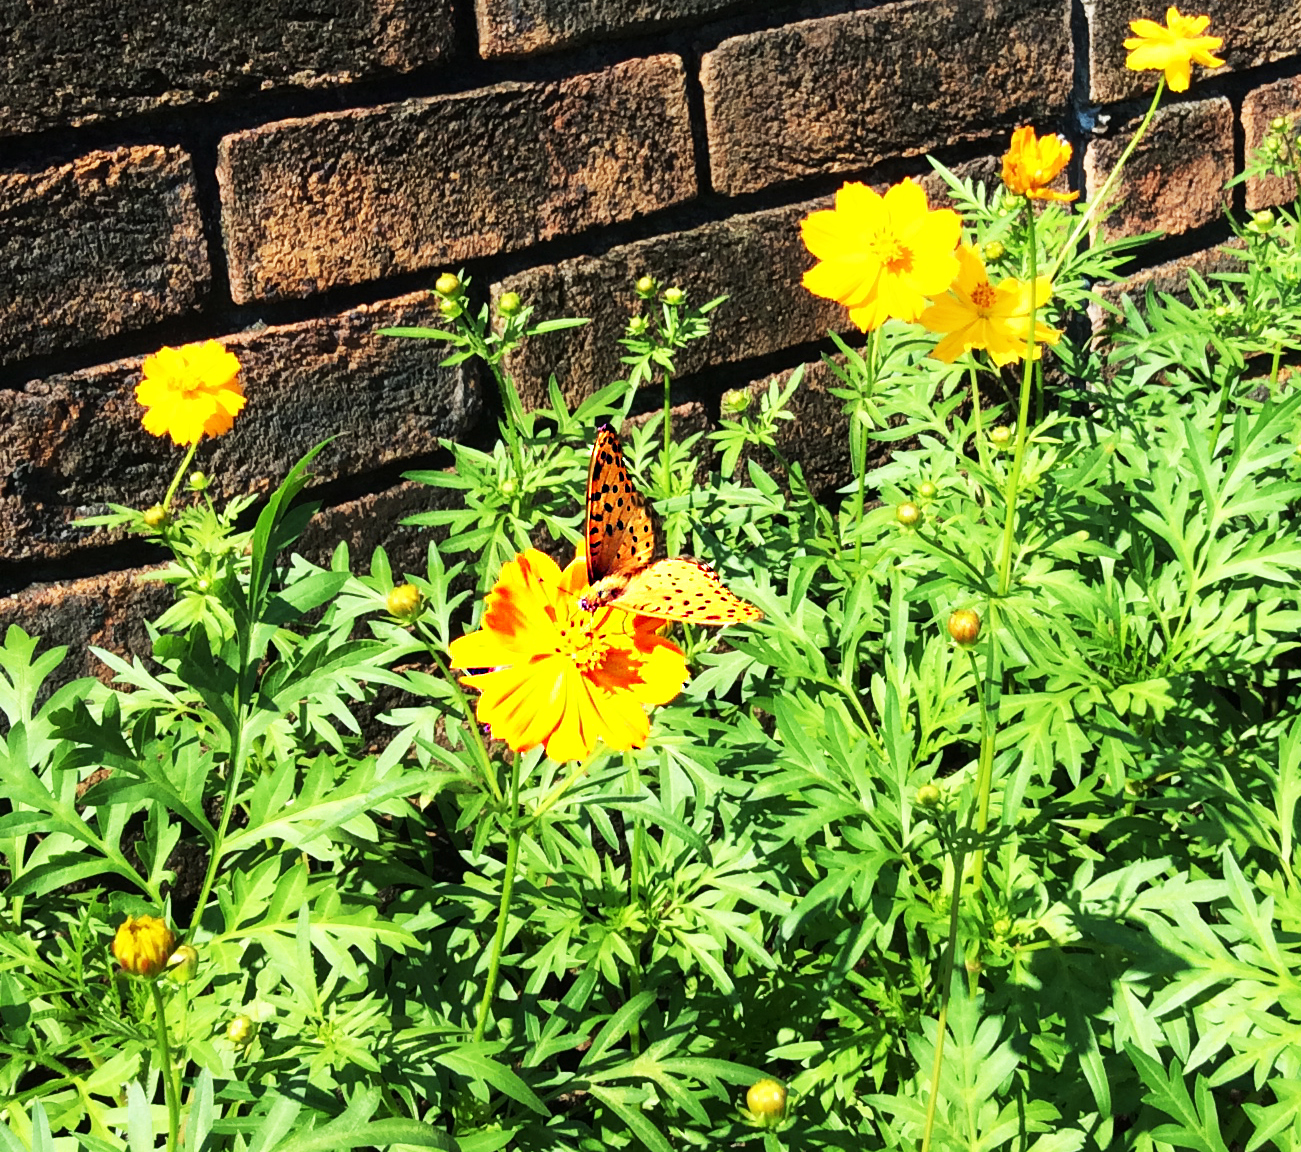 well camouflaged amoung yellow marigolds is this yellow and black spotted butterfly. The marigolds are at the base of a redish brick wall and have plenty of green foliage